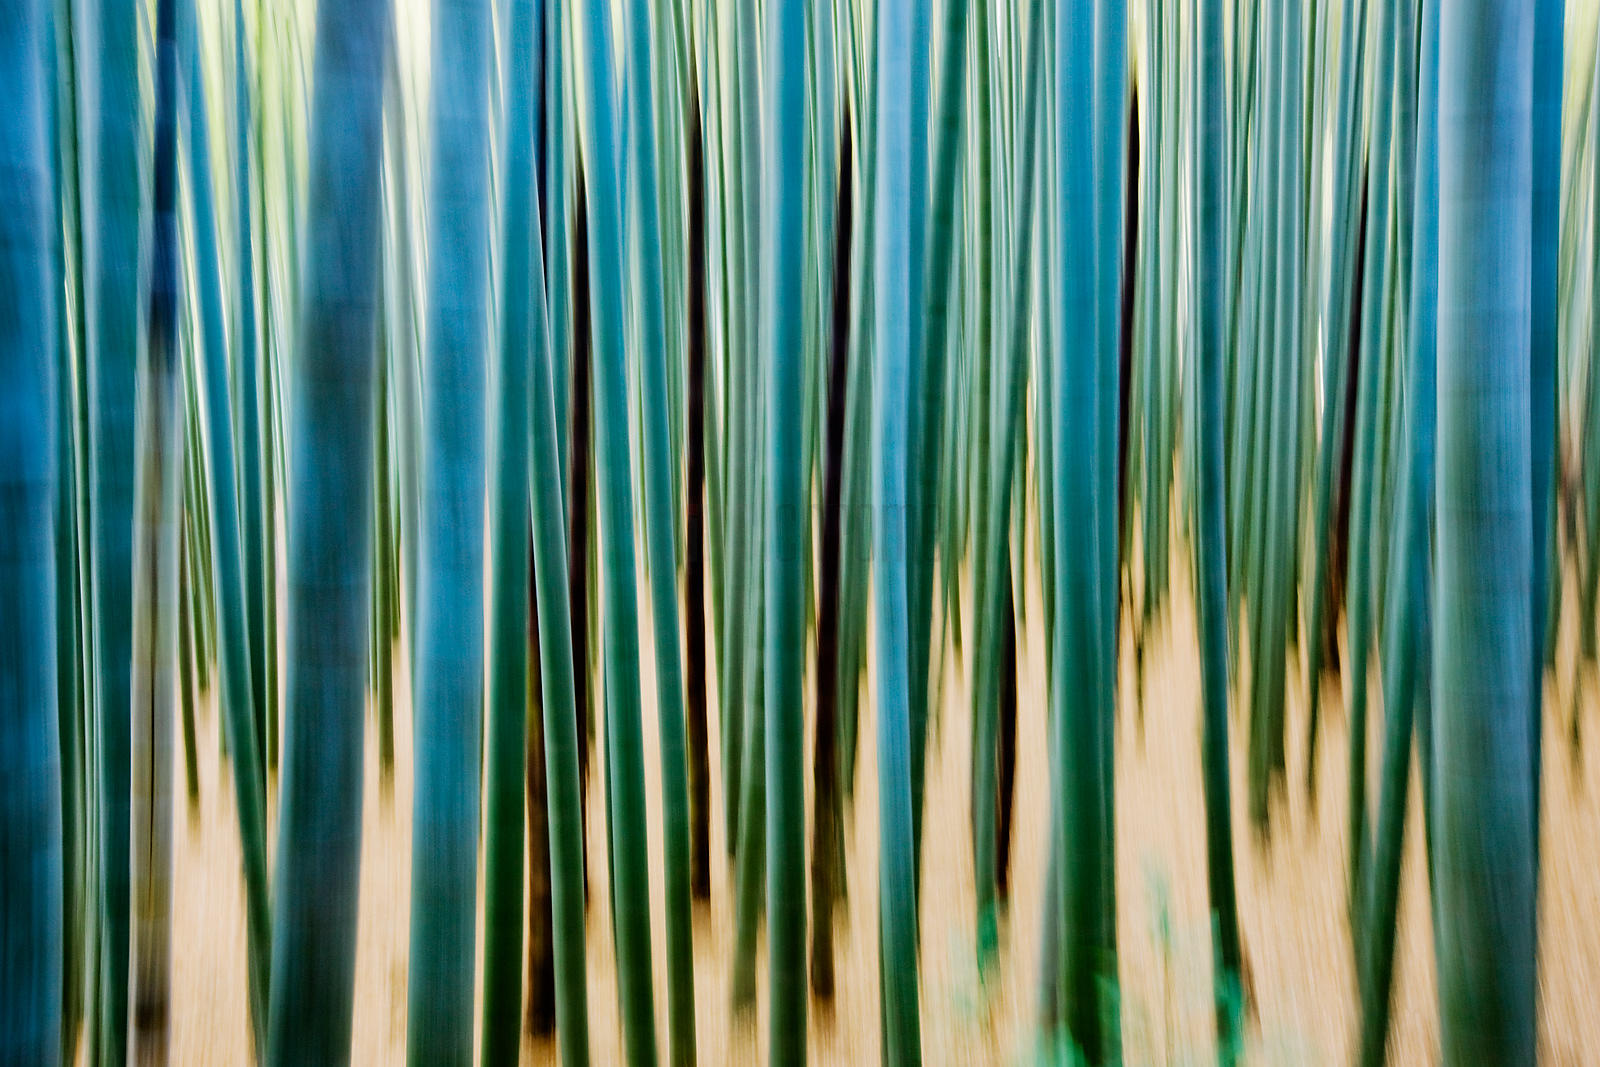 Vertical Motion Blur in Bamboo Forest